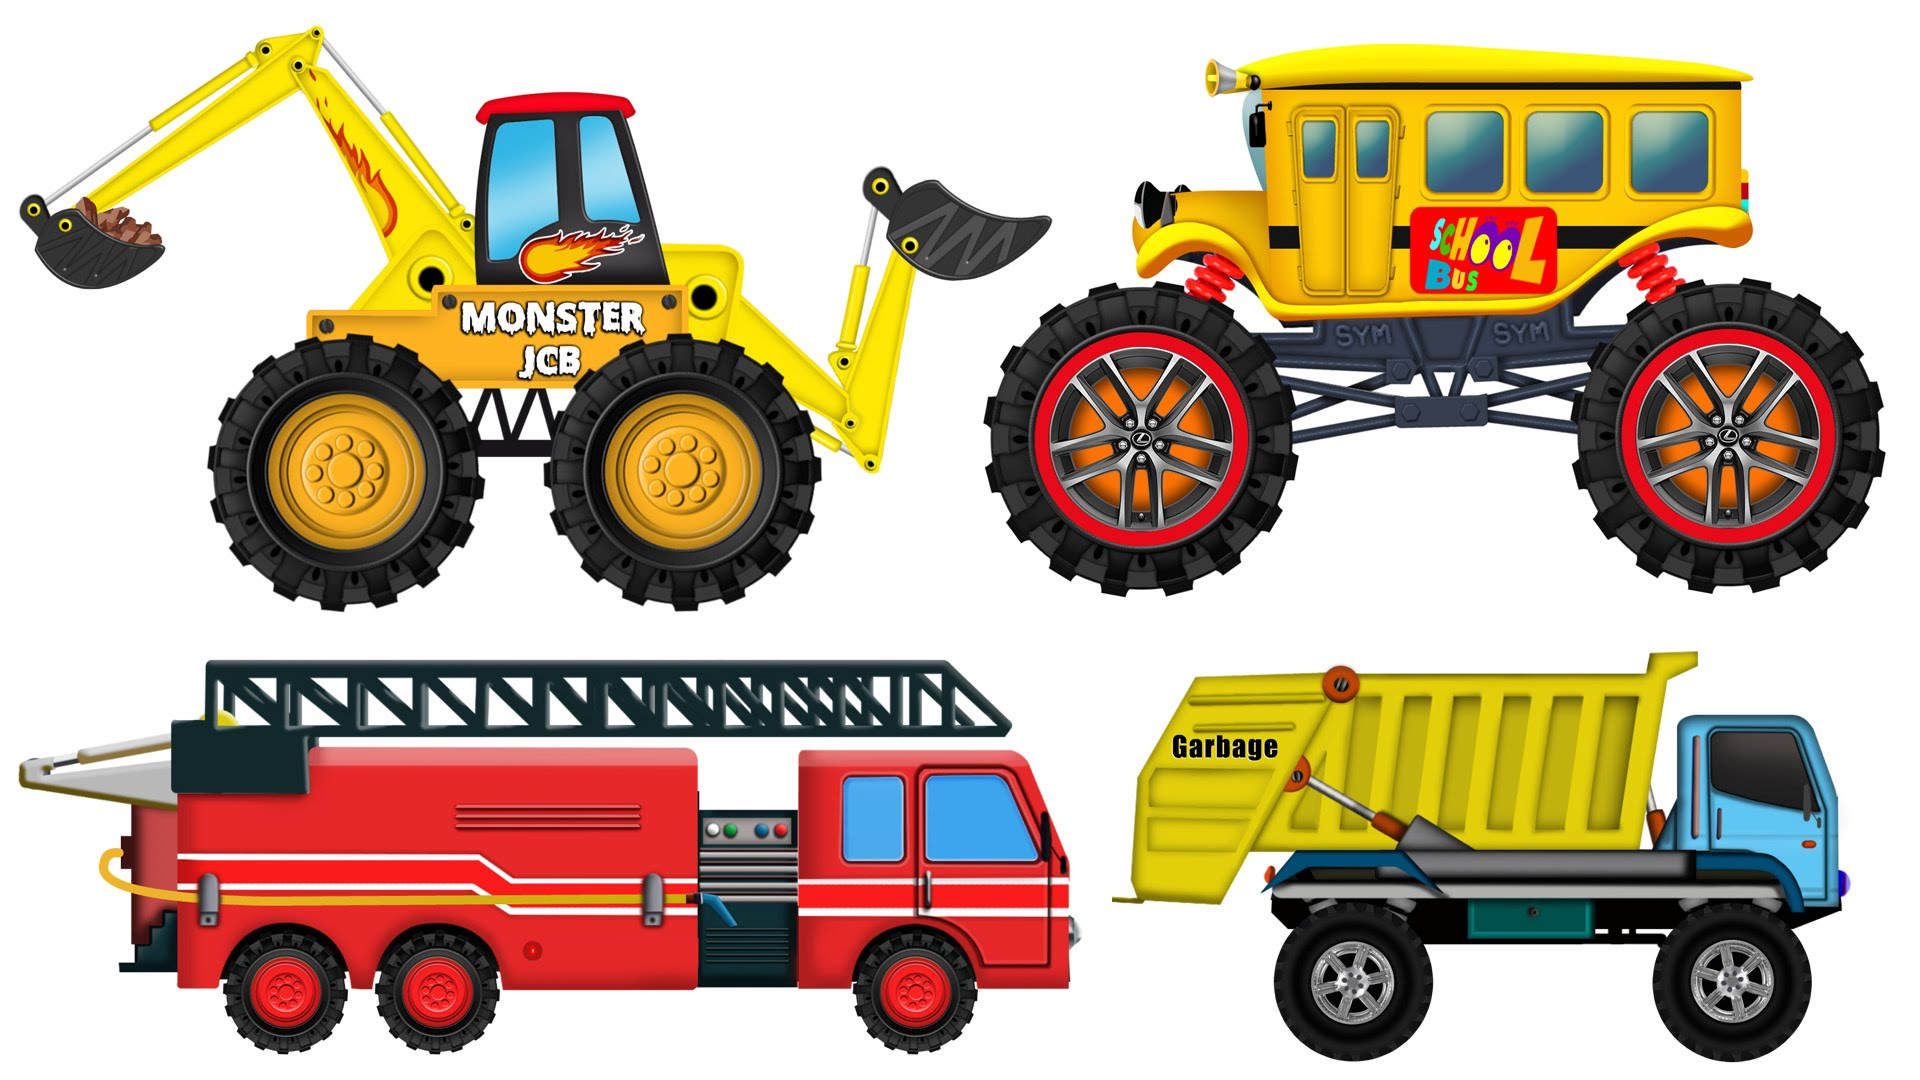 Ambulance garbage truck fire. Backhoe clipart car clip art library stock